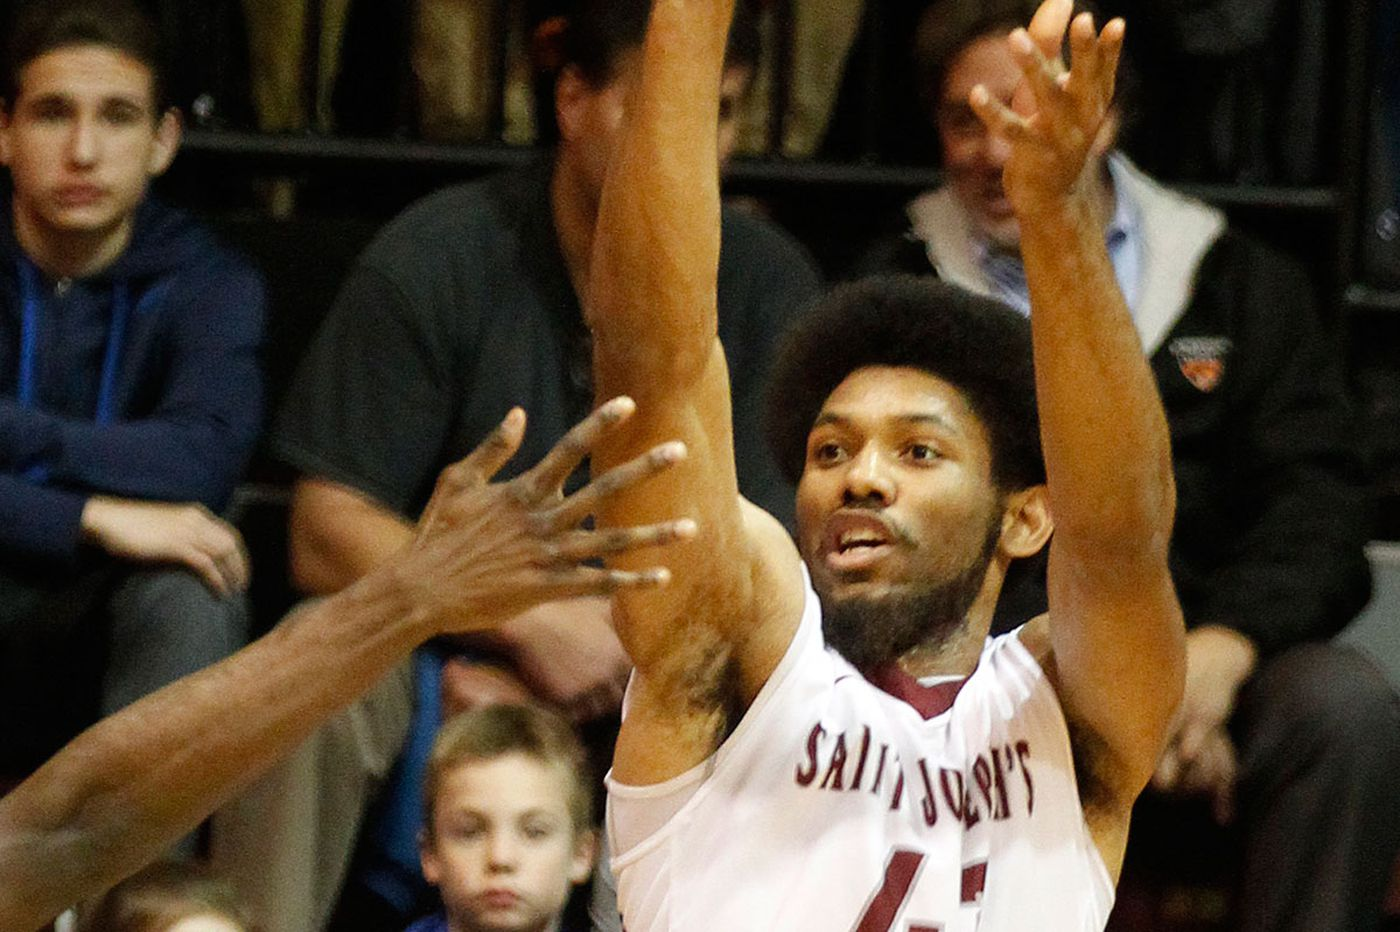 St. Joseph's Bembry brings balanced game into contest against Temple